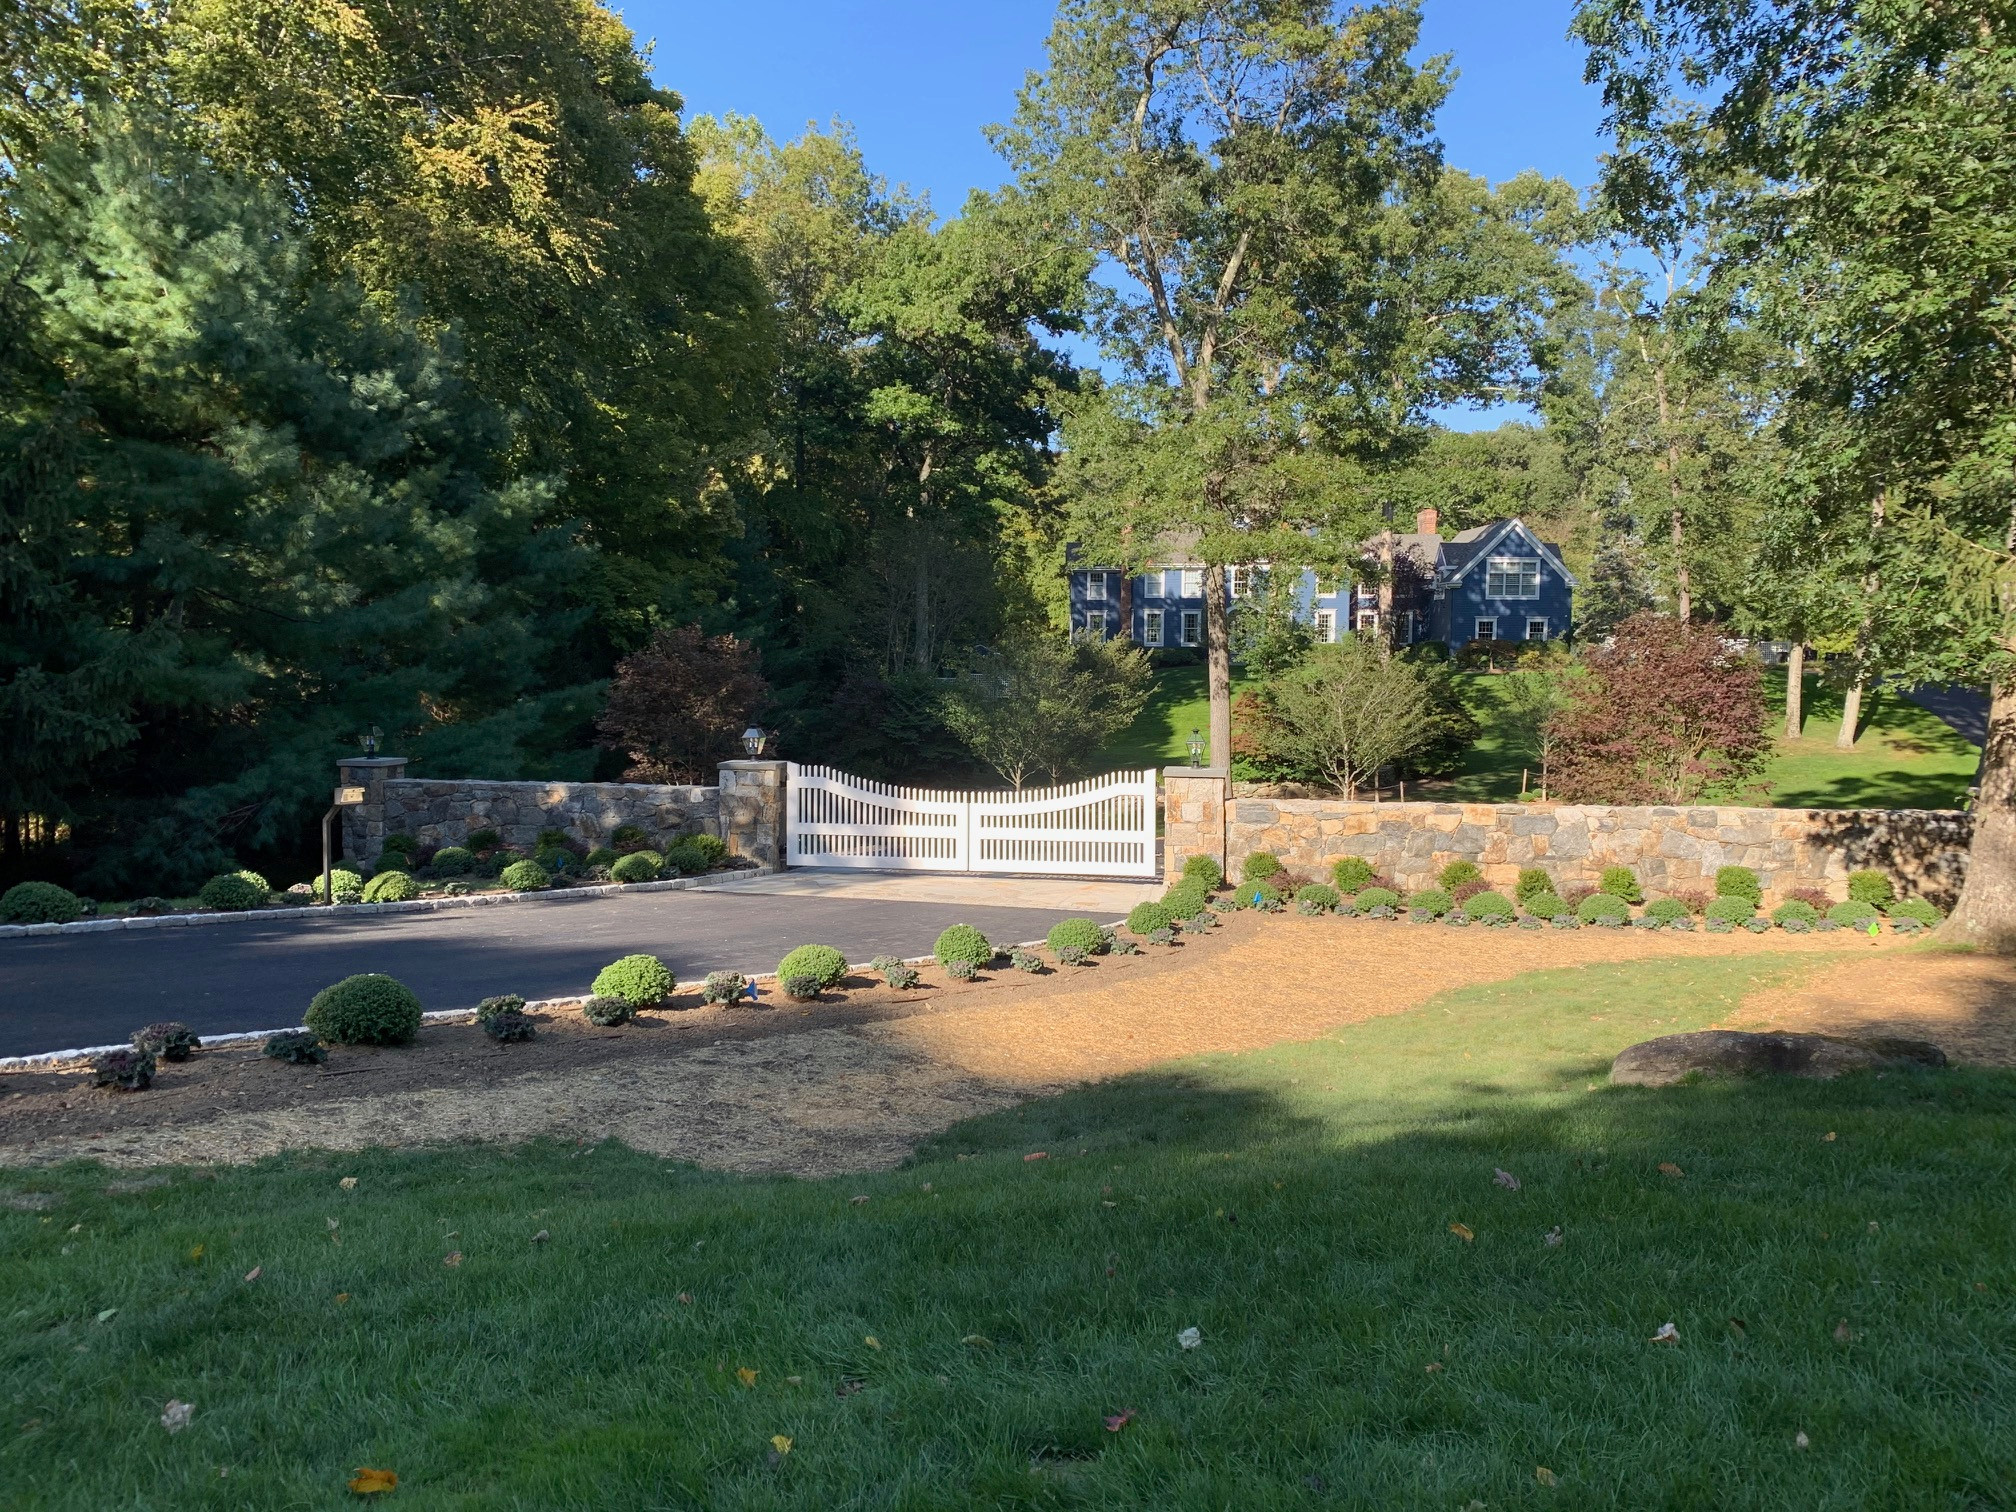 Last Day at Private Home in Pound Ridge - 2 years design/build